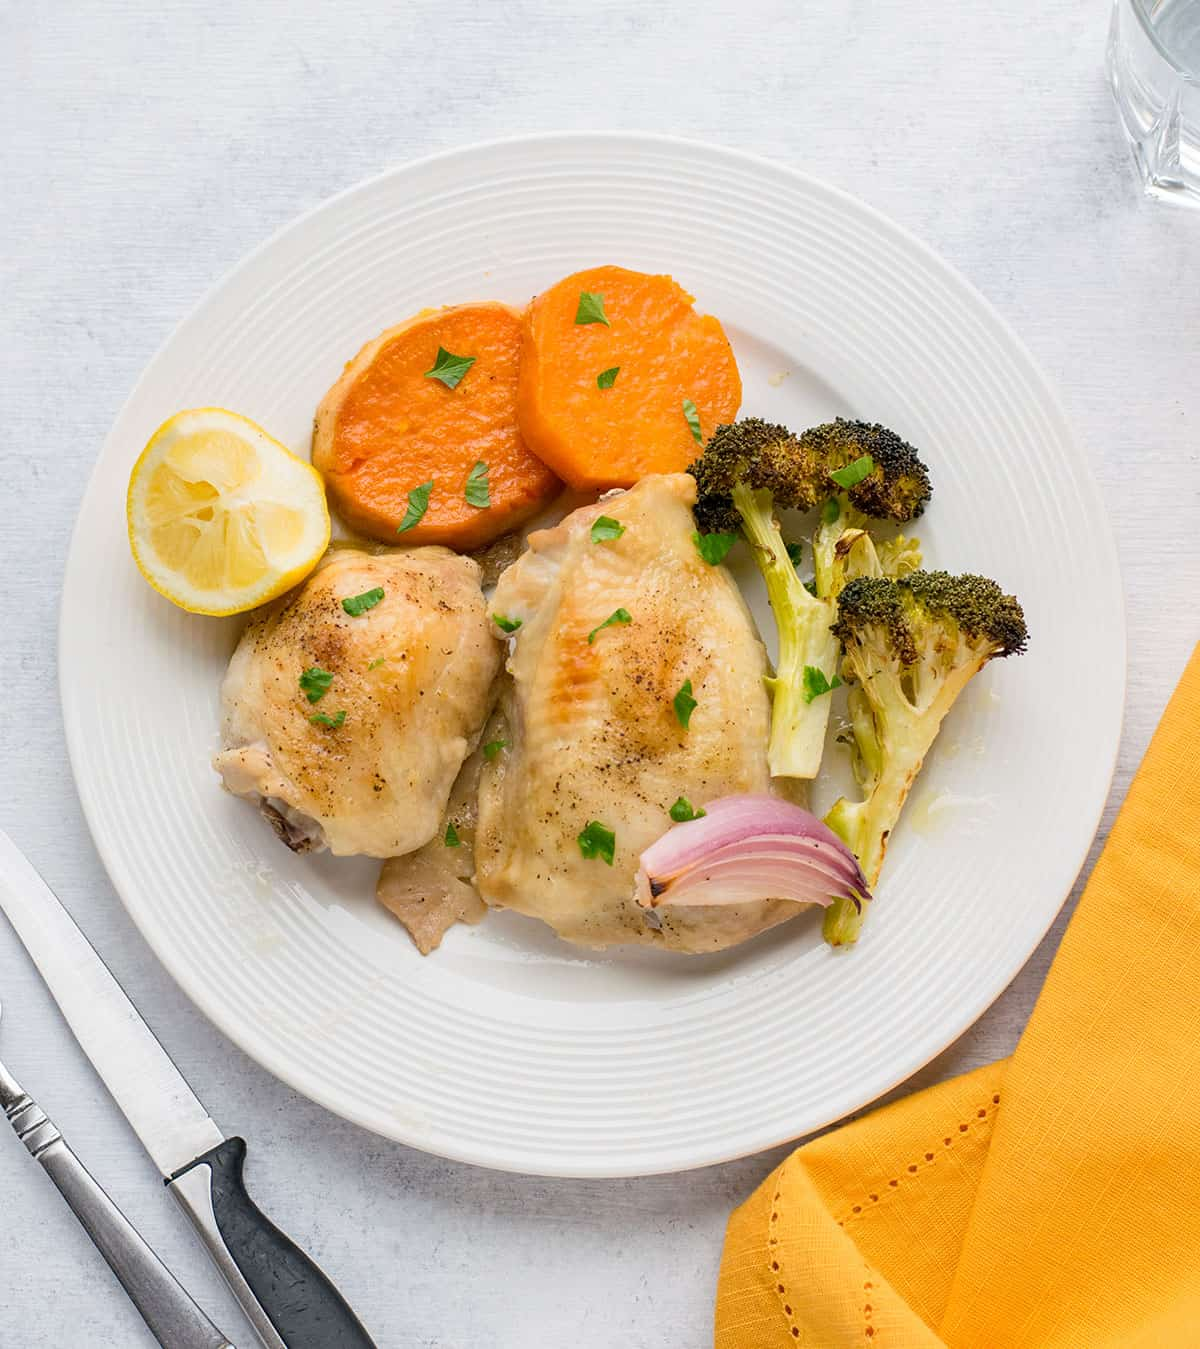 plate of roasted chicken thighs with broccoli, sweet potatoes, lemon, red onion